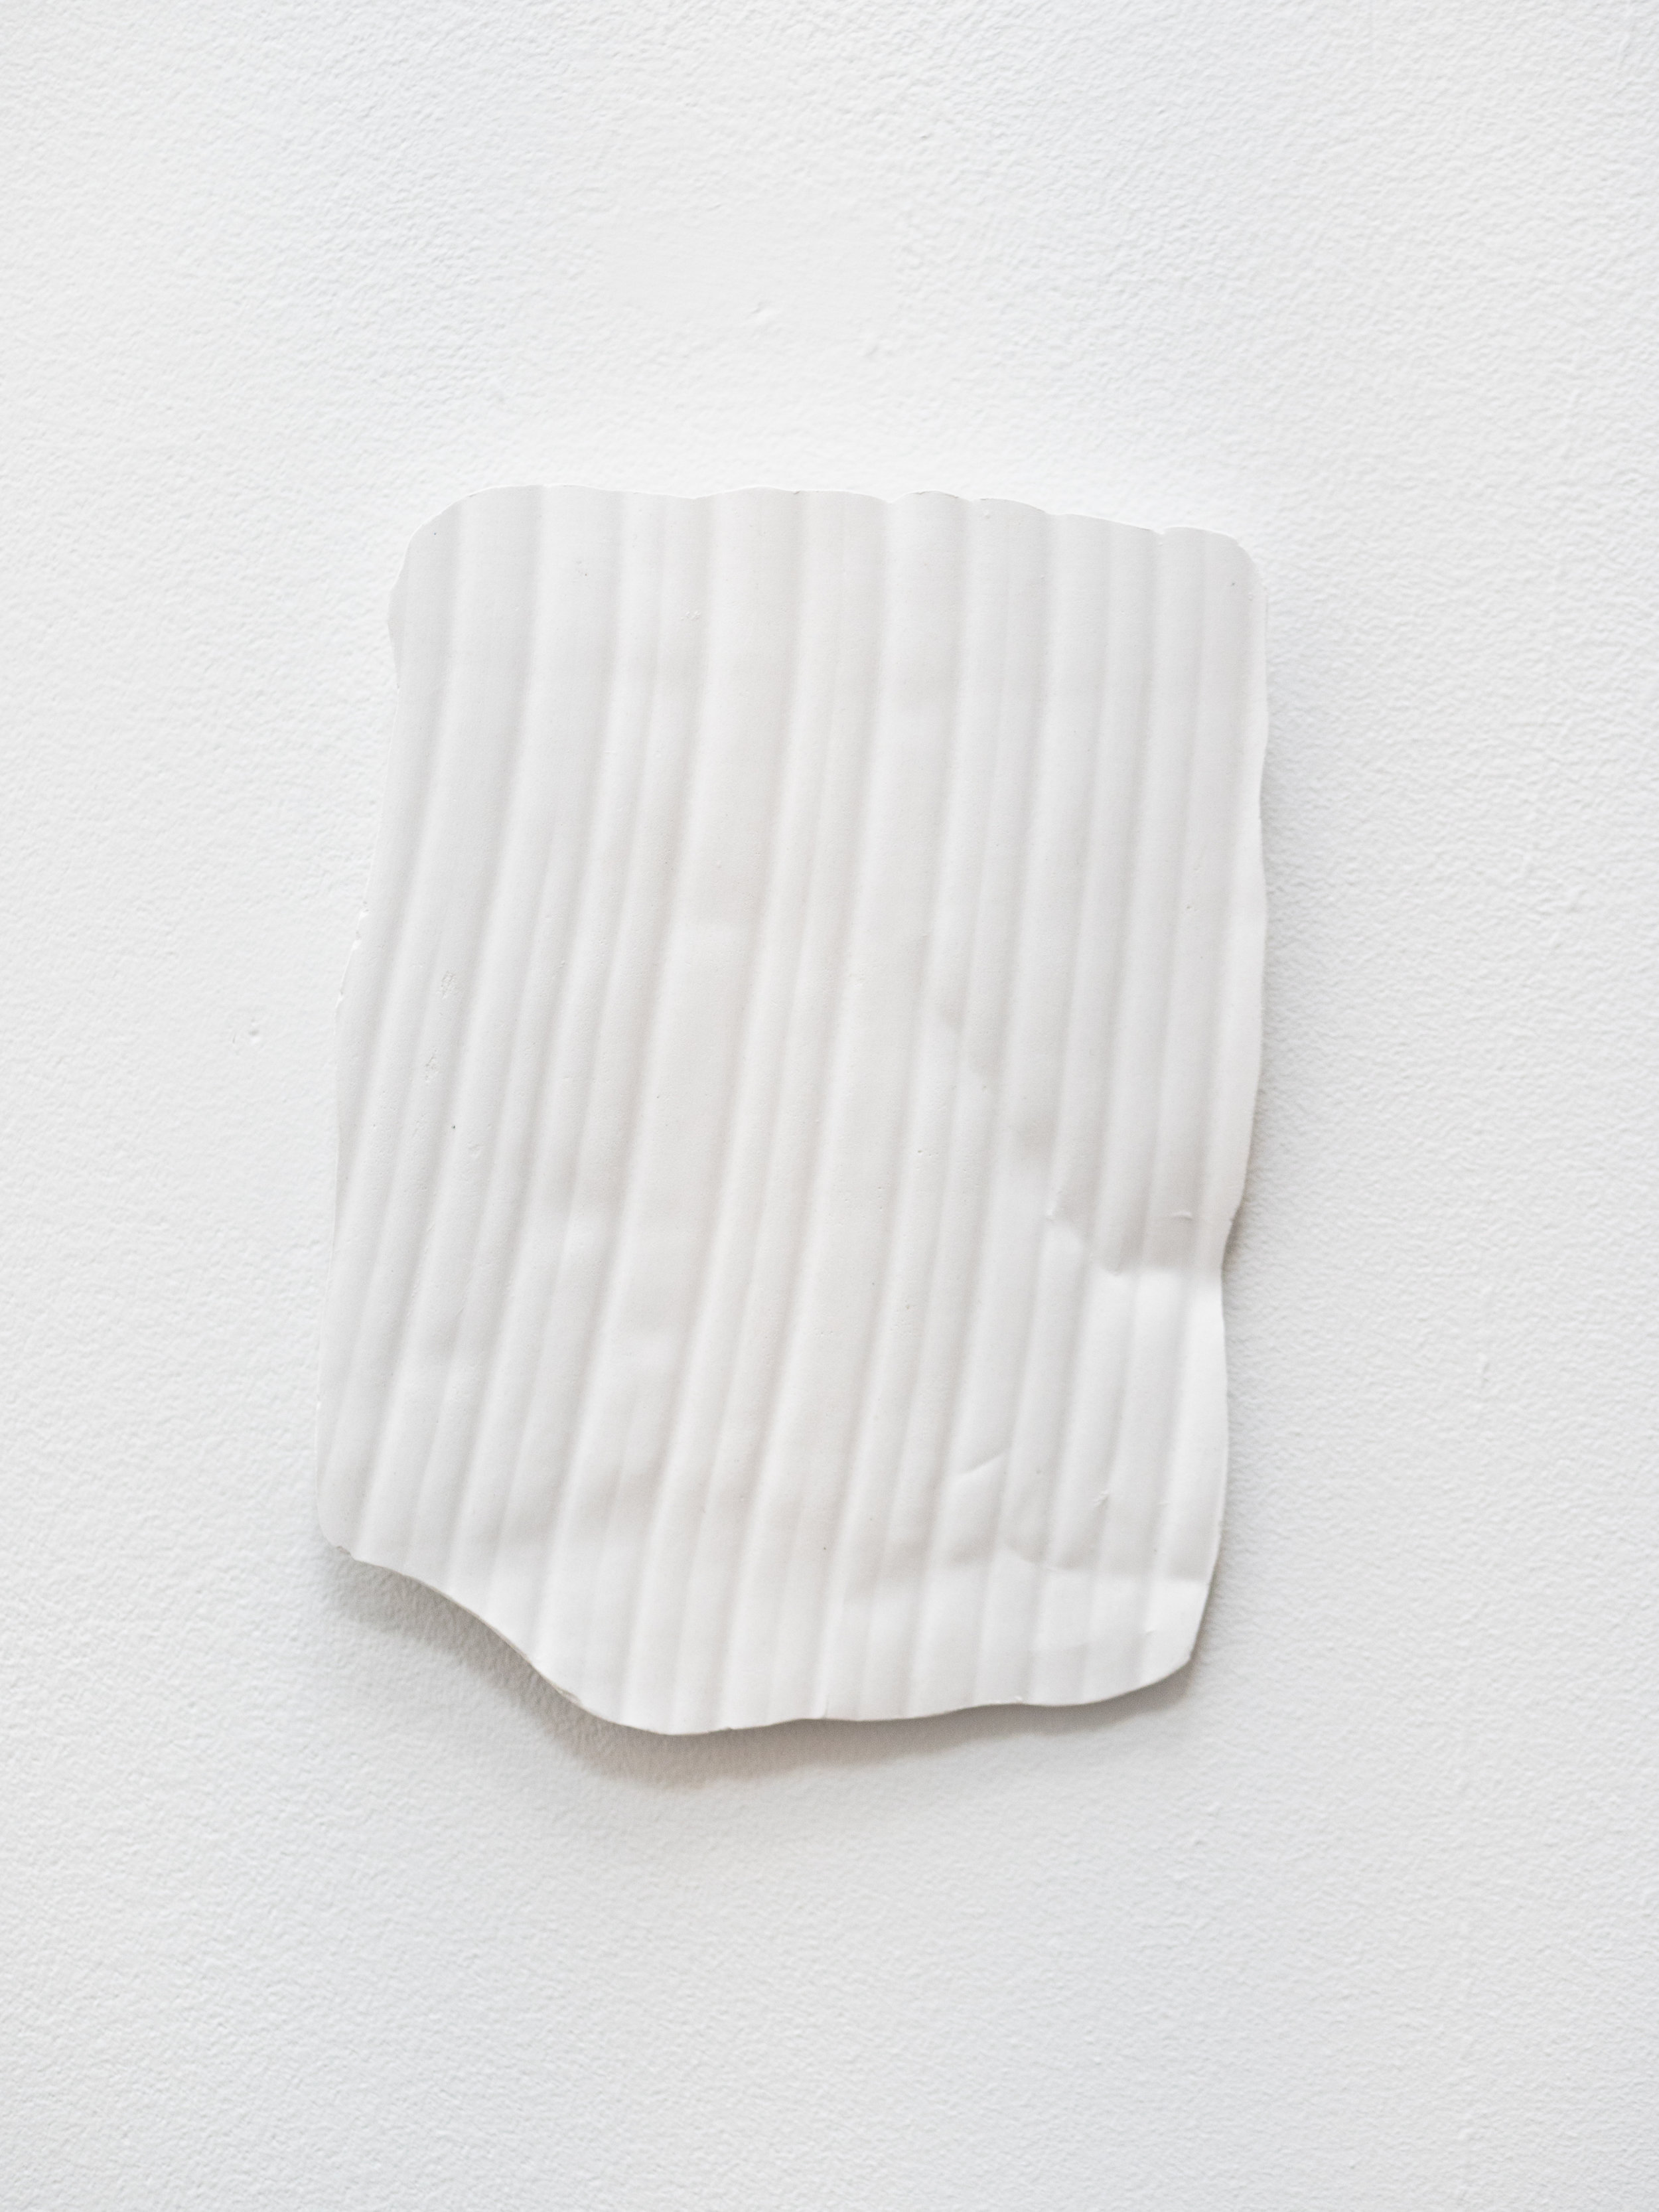 kamay mould, 2017, plaster, 6.5 x 5 inches